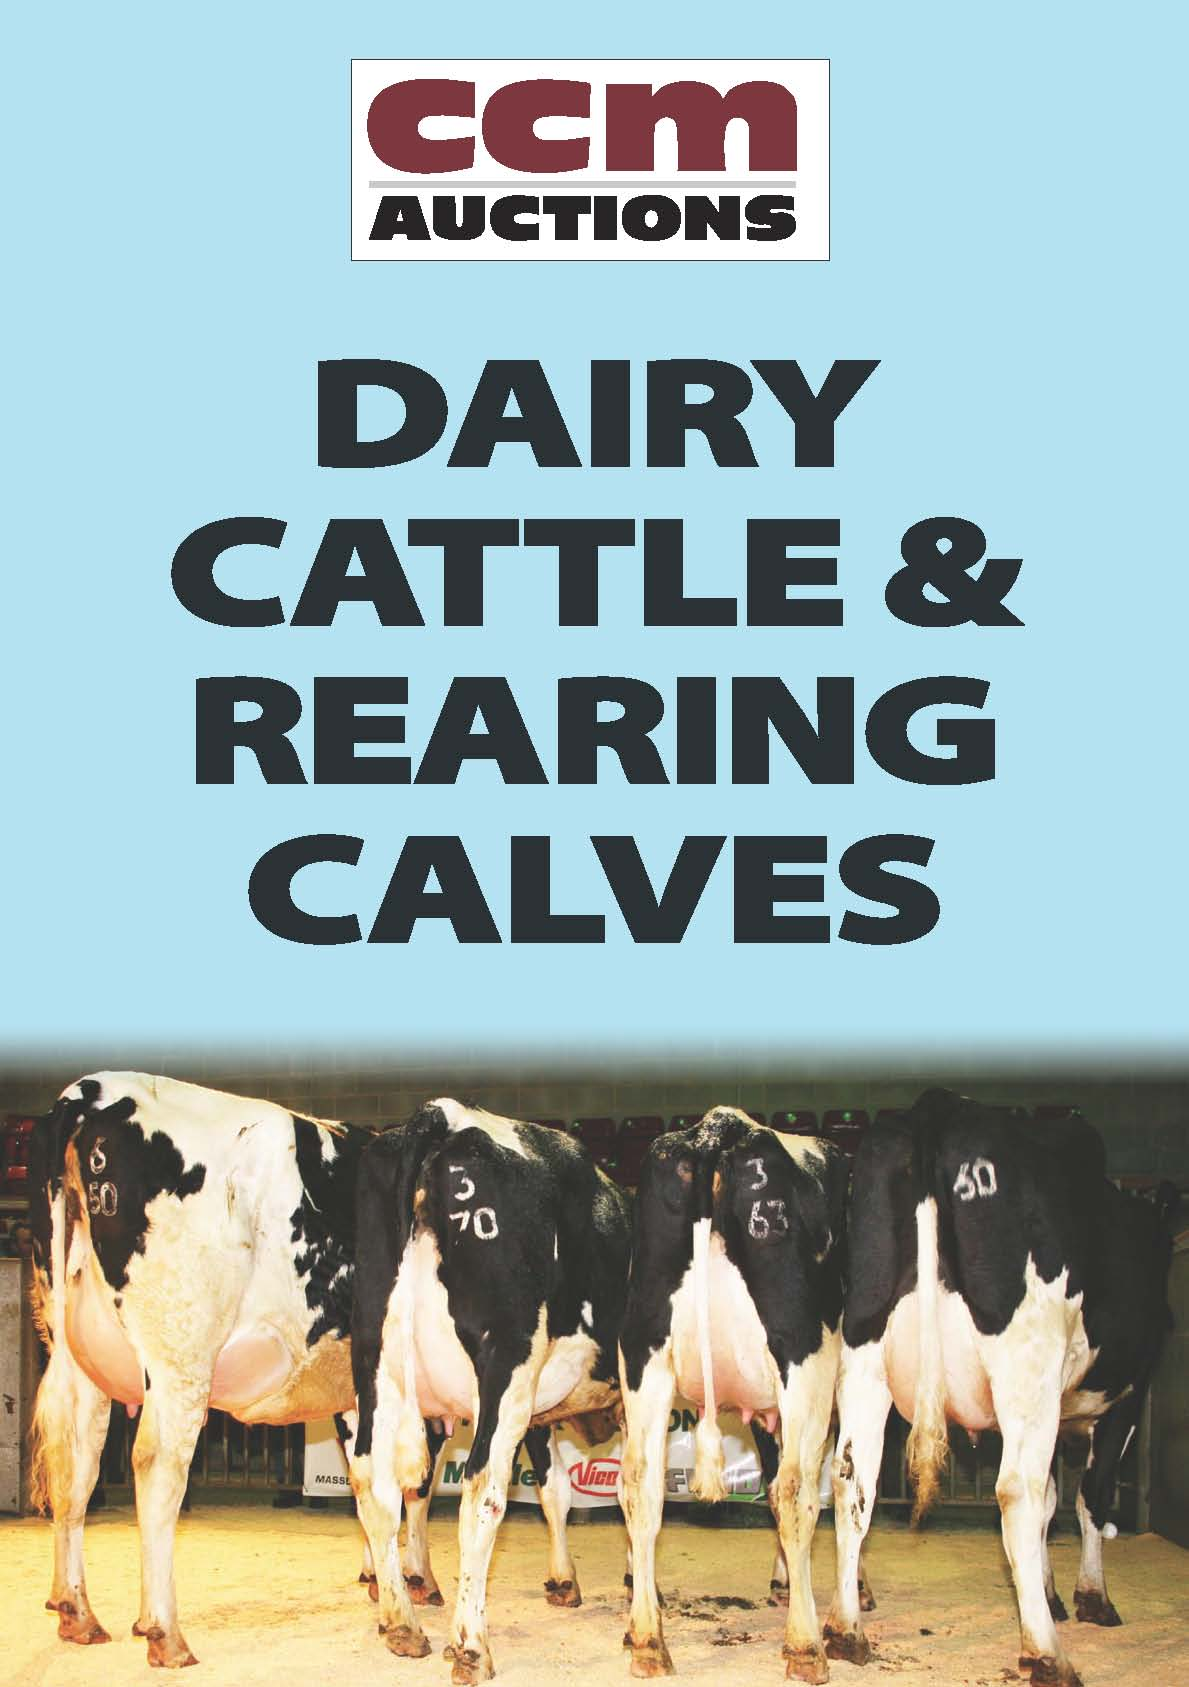 MARKET REPORT - MONDAY 30TH MARCH 2015 CALVES